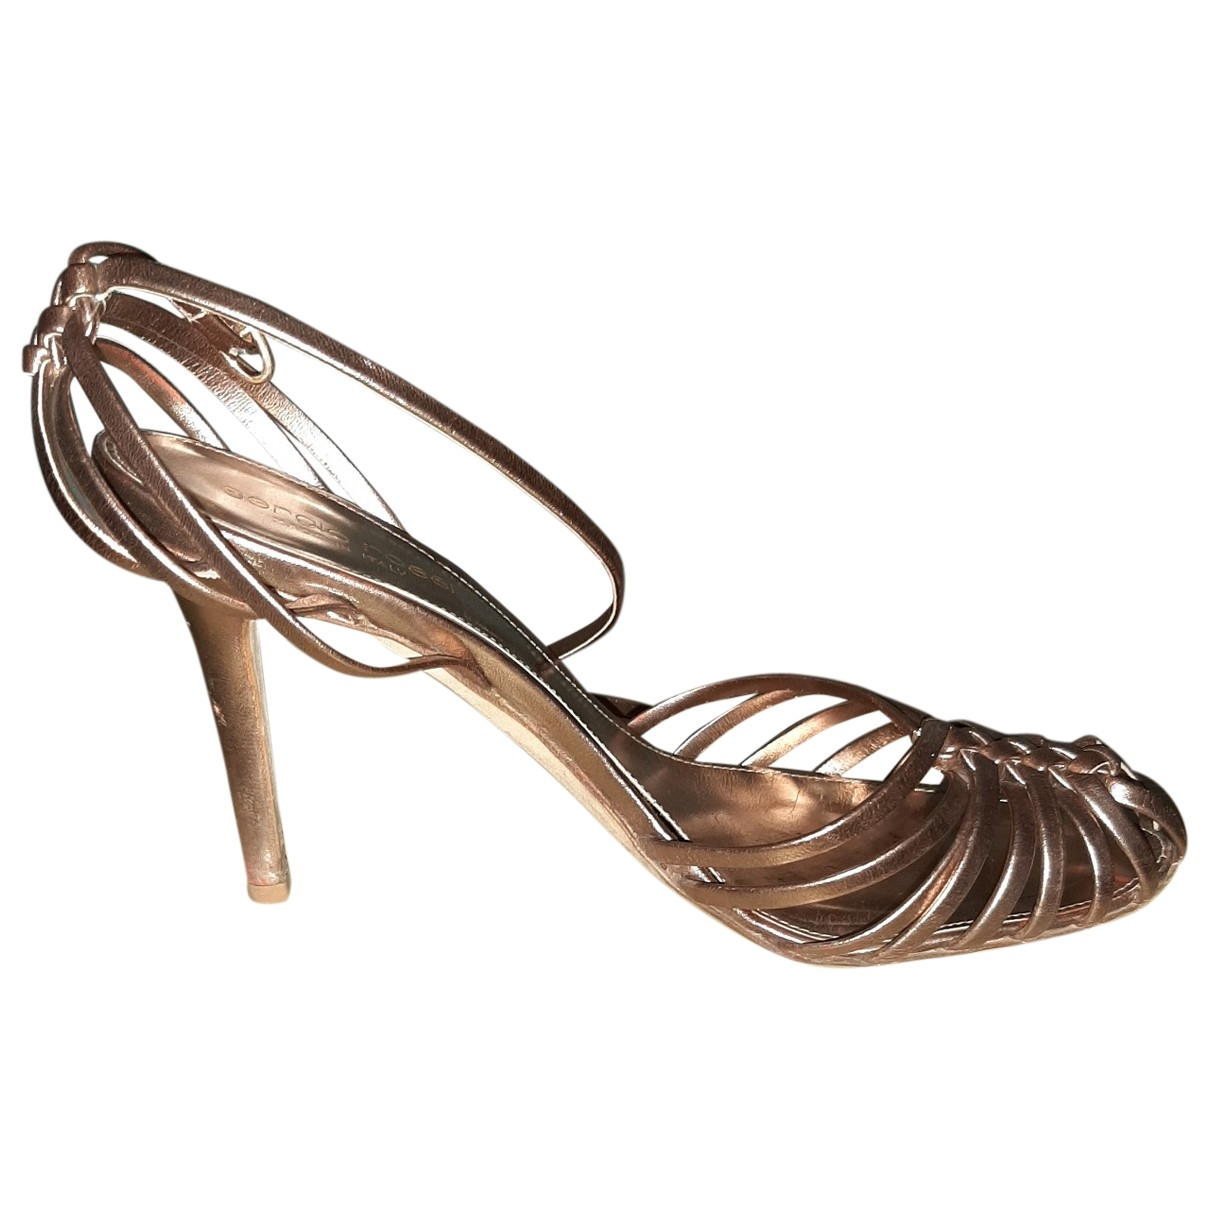 Sergio Rossi \N Gold Leather Sandals for Women 38.5 EU